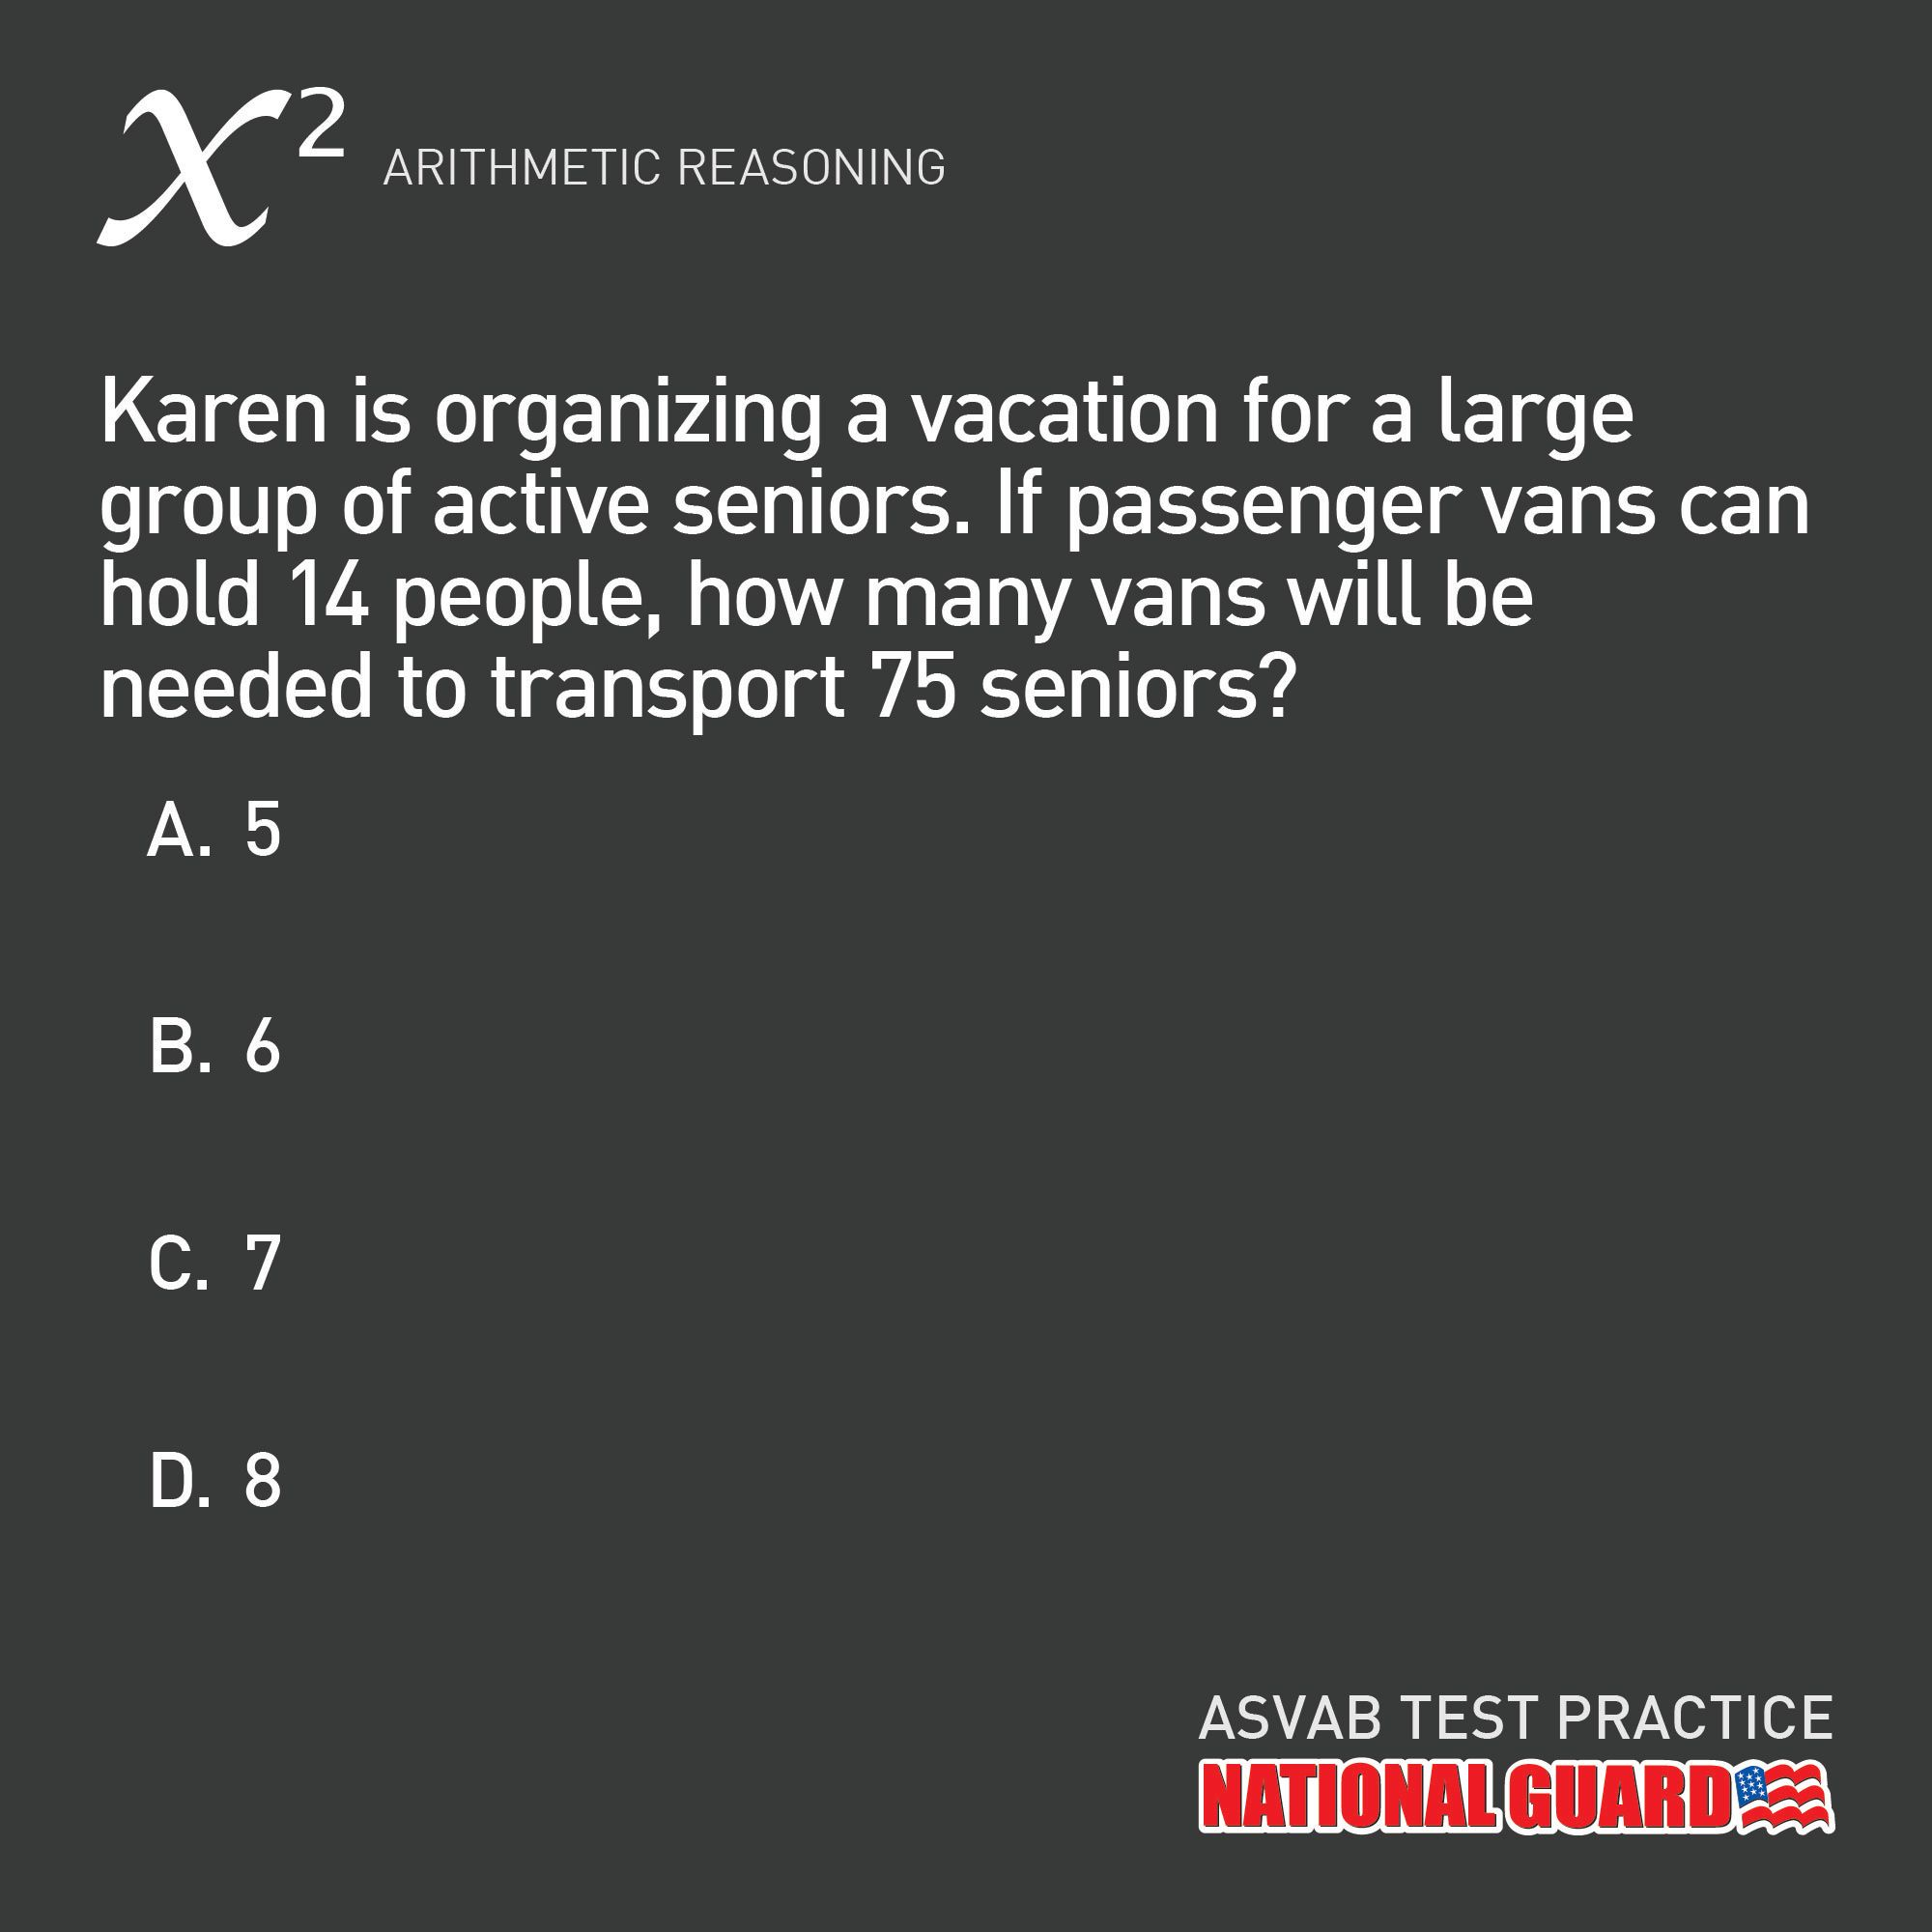 Can You Tell Us The Correct Answer To This Practice Asvab